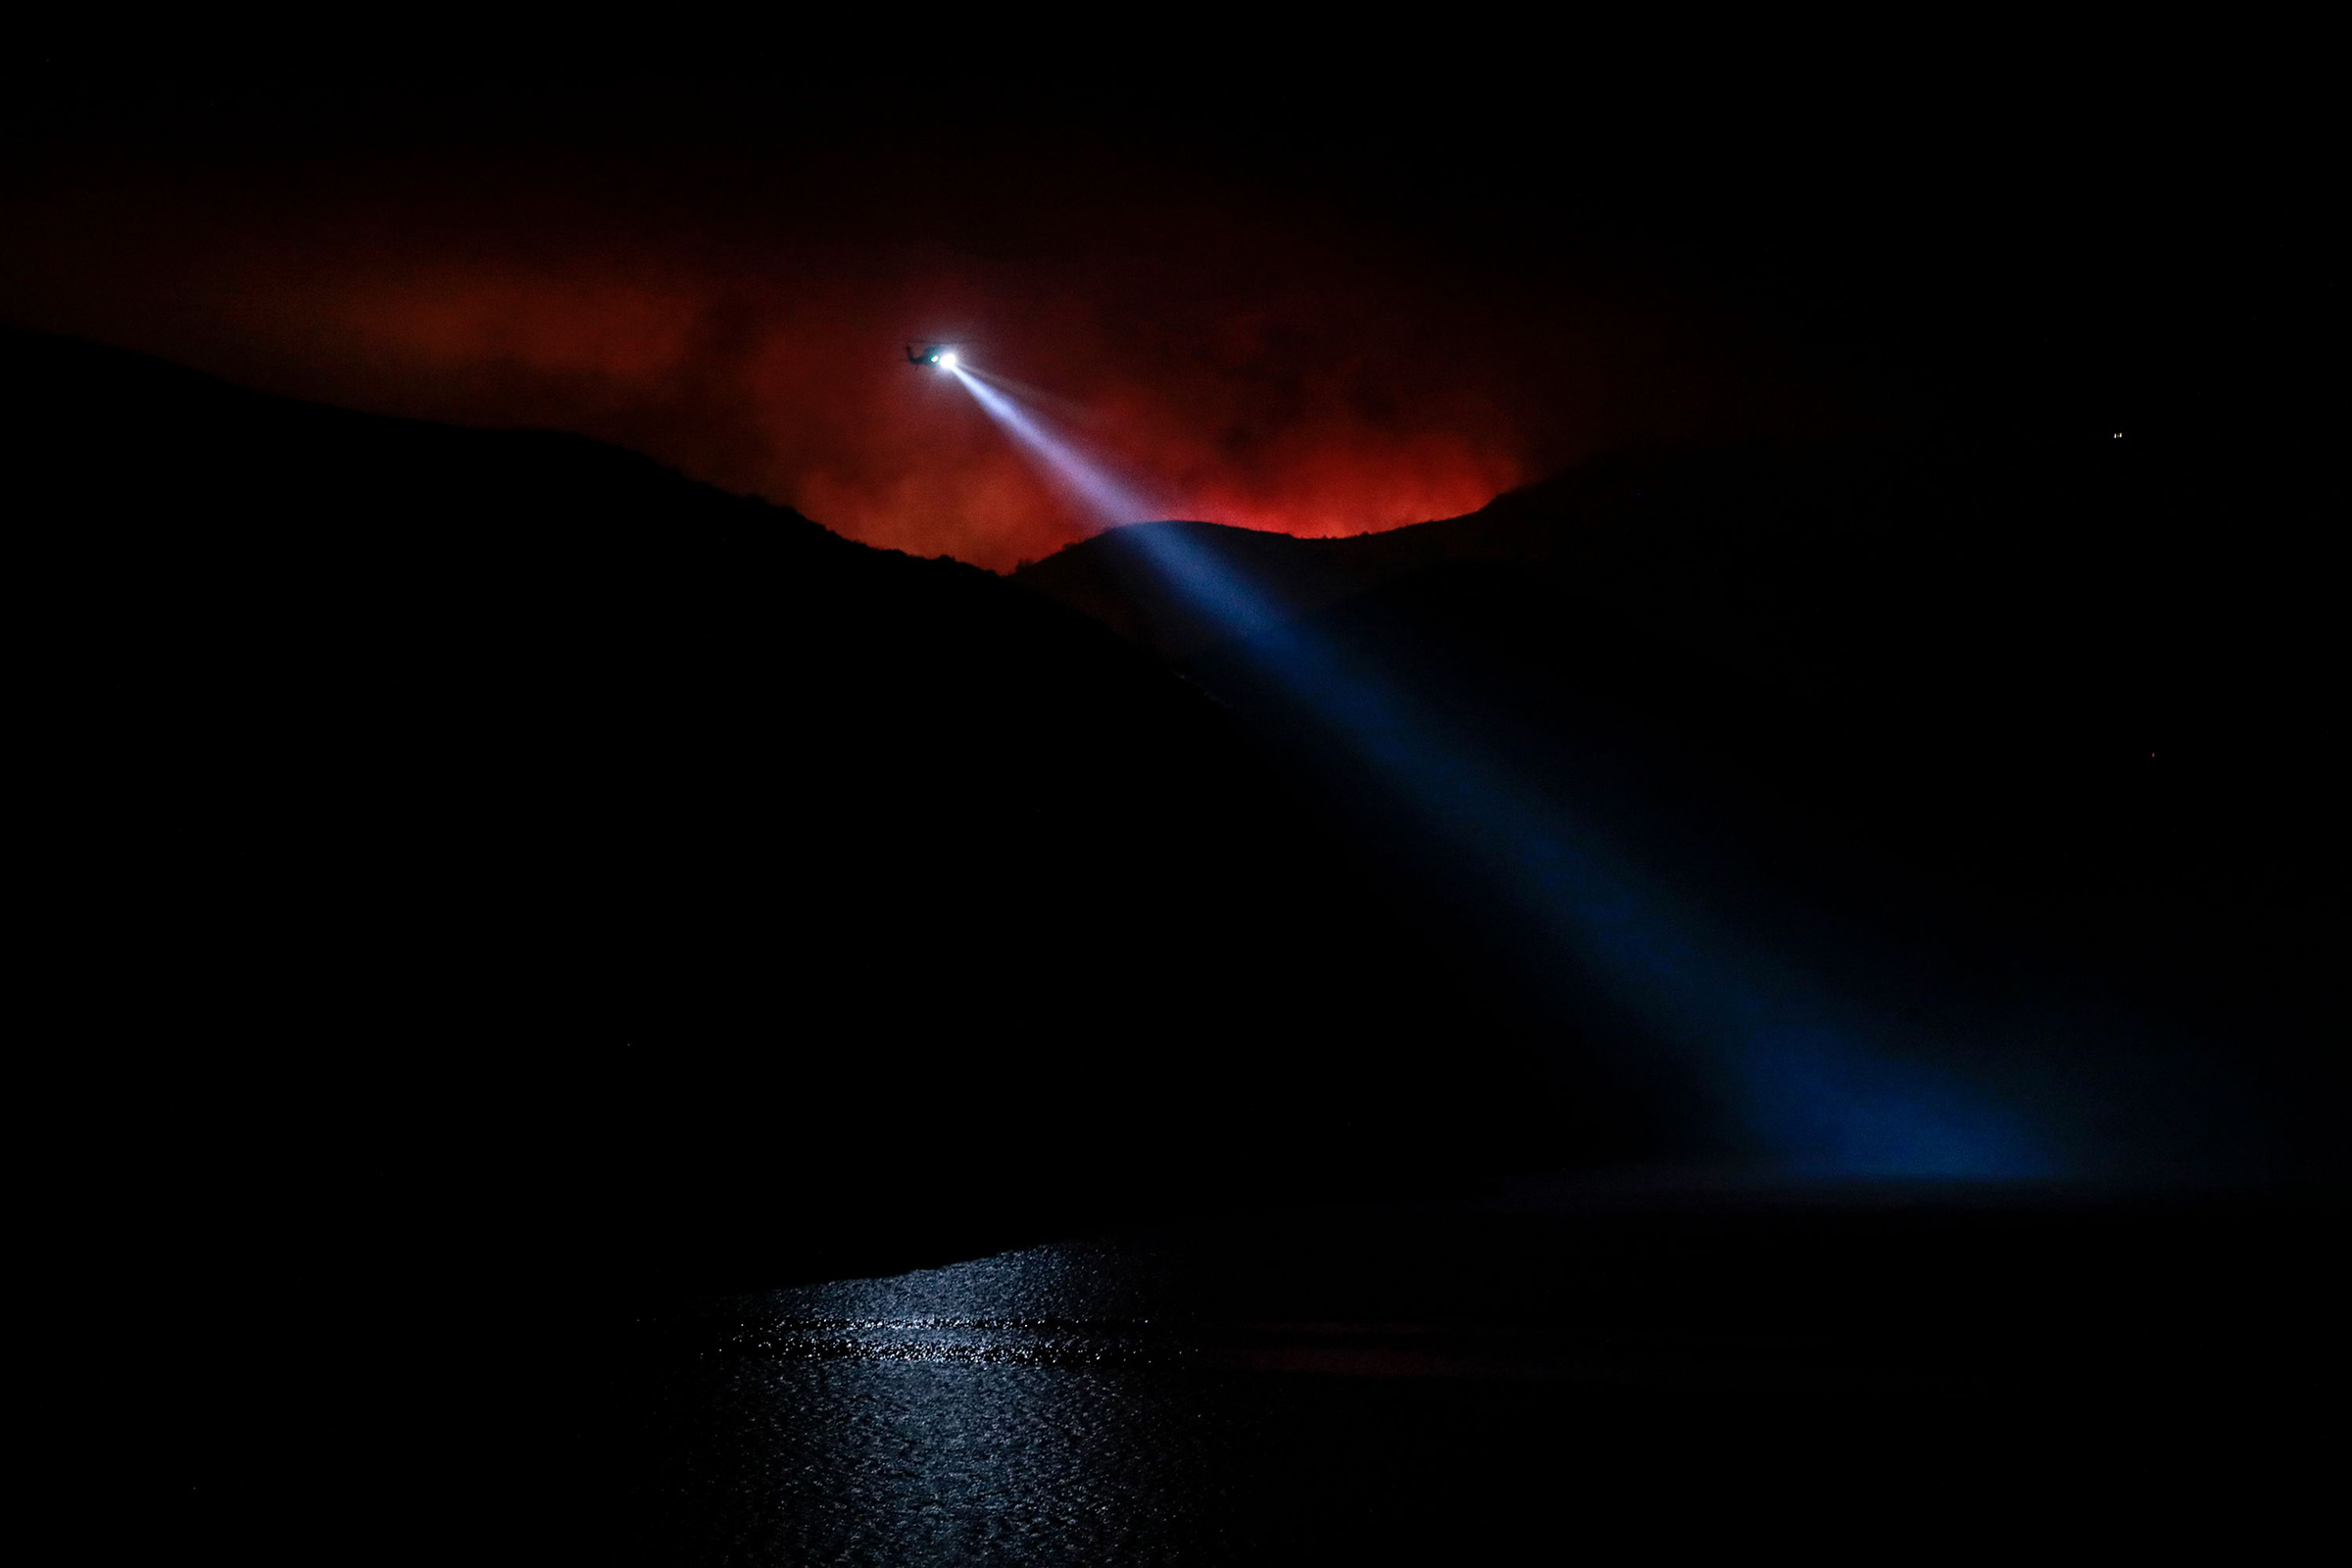 The night sky glows red from the Holser Fire in Piru, Calif., on Aug. 17, as a water-dropping helicopter works to slow the spread of flames.